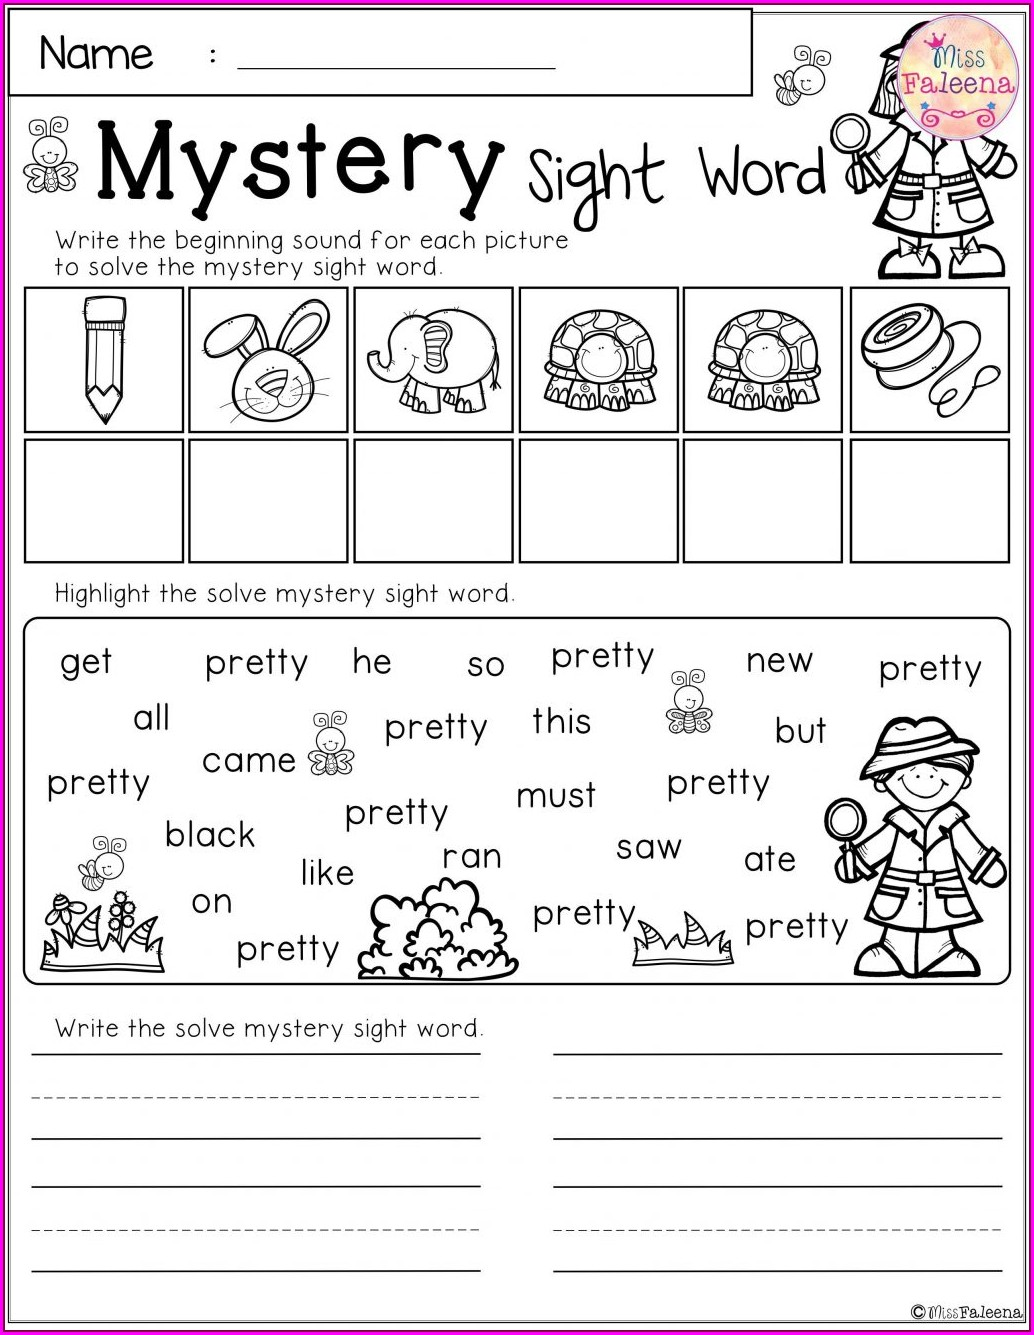 Transition Word Practice Worksheet Answers